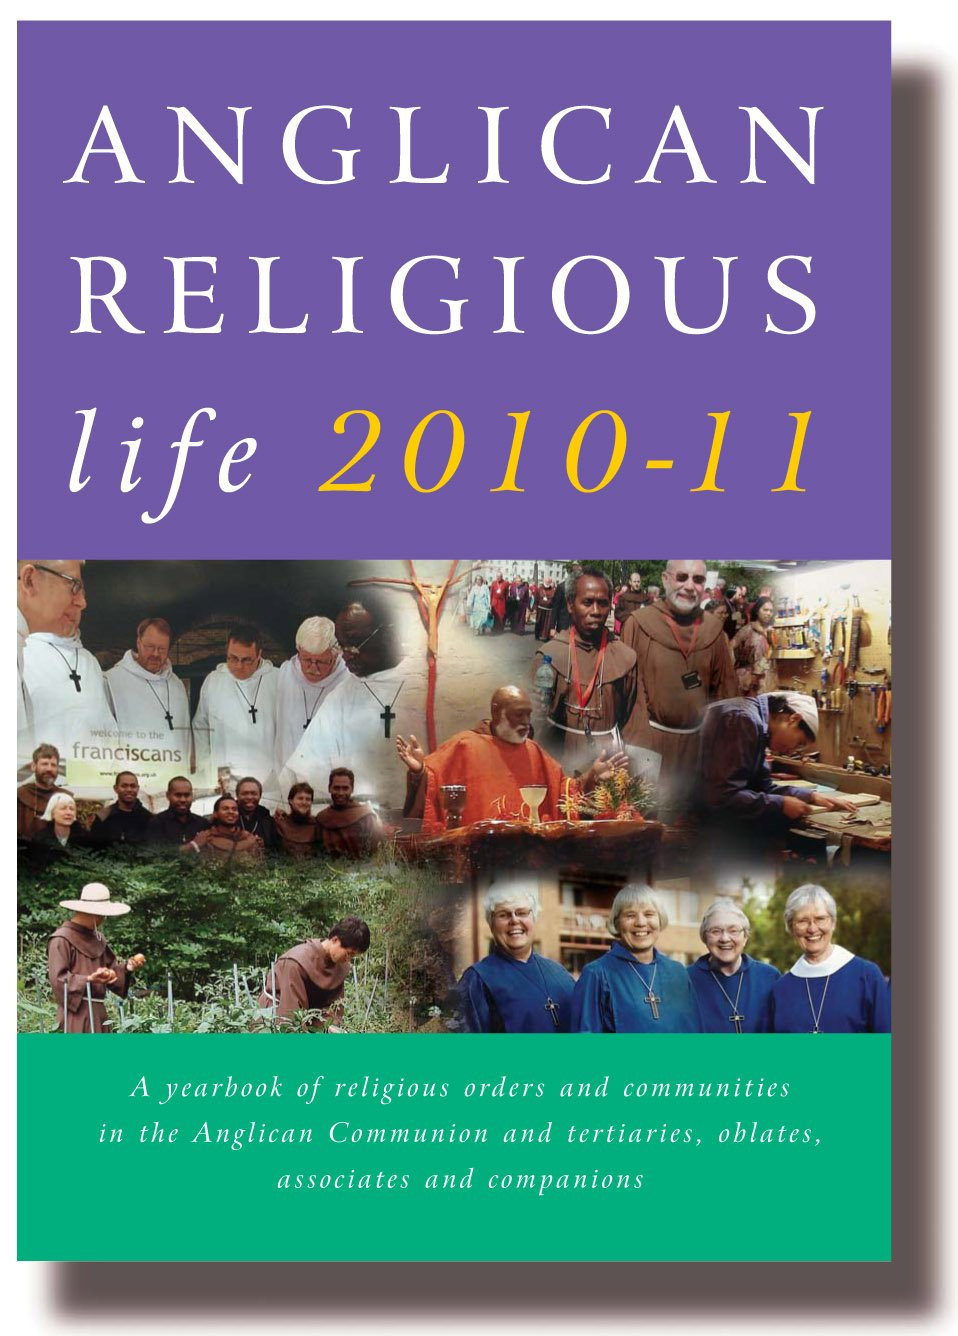 Anglican Religious Life 2010-11: A Yearbook of Religious Orders and Communities in the Anglican Communion and Tertiaries, Oblates, Associates and Companions